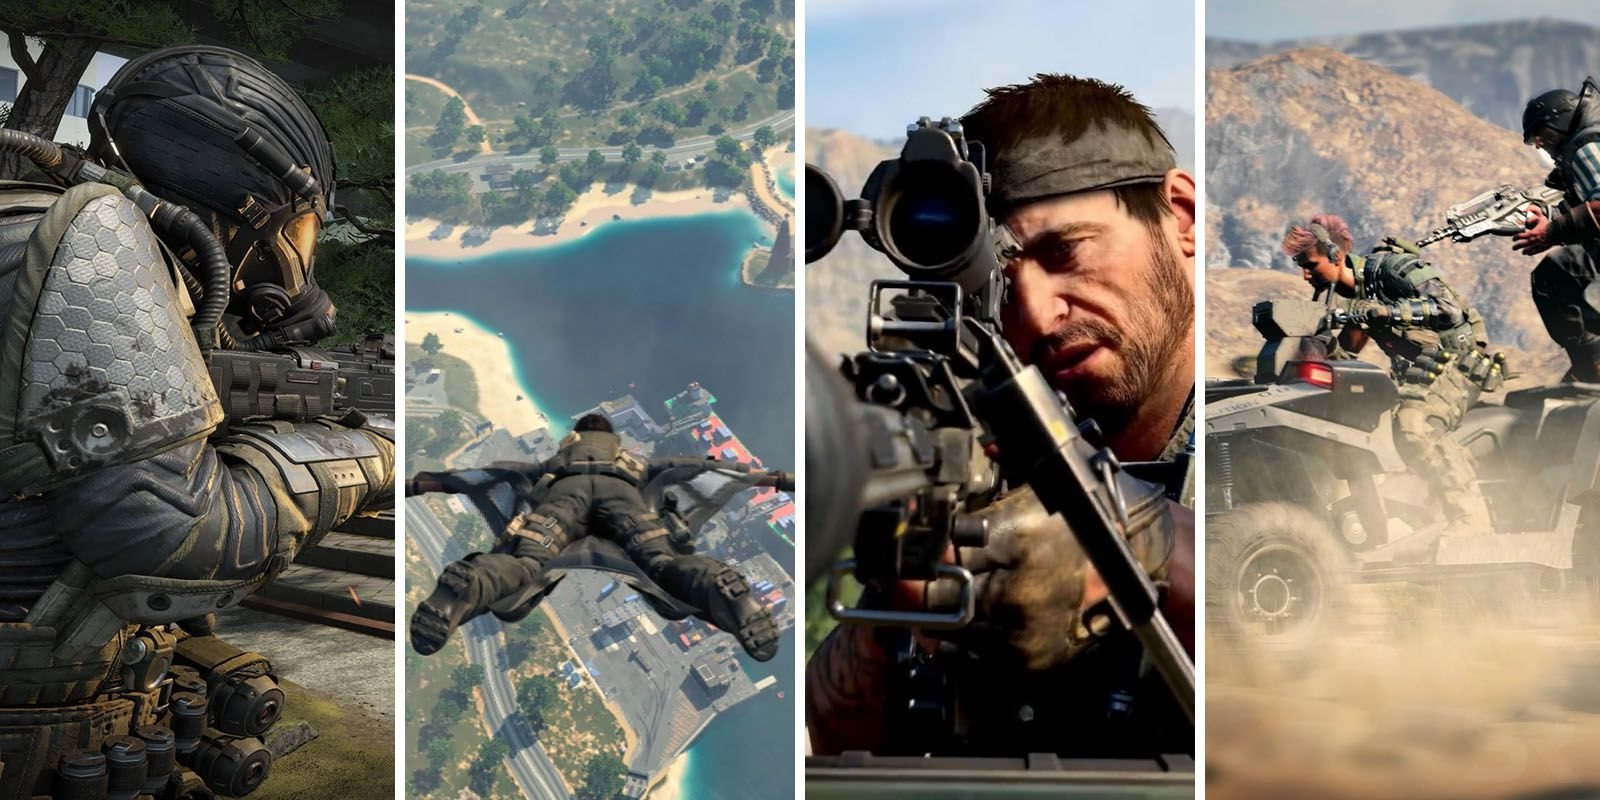 Our Thoughts on Call of Duty's Blackout Battle Royale Mode